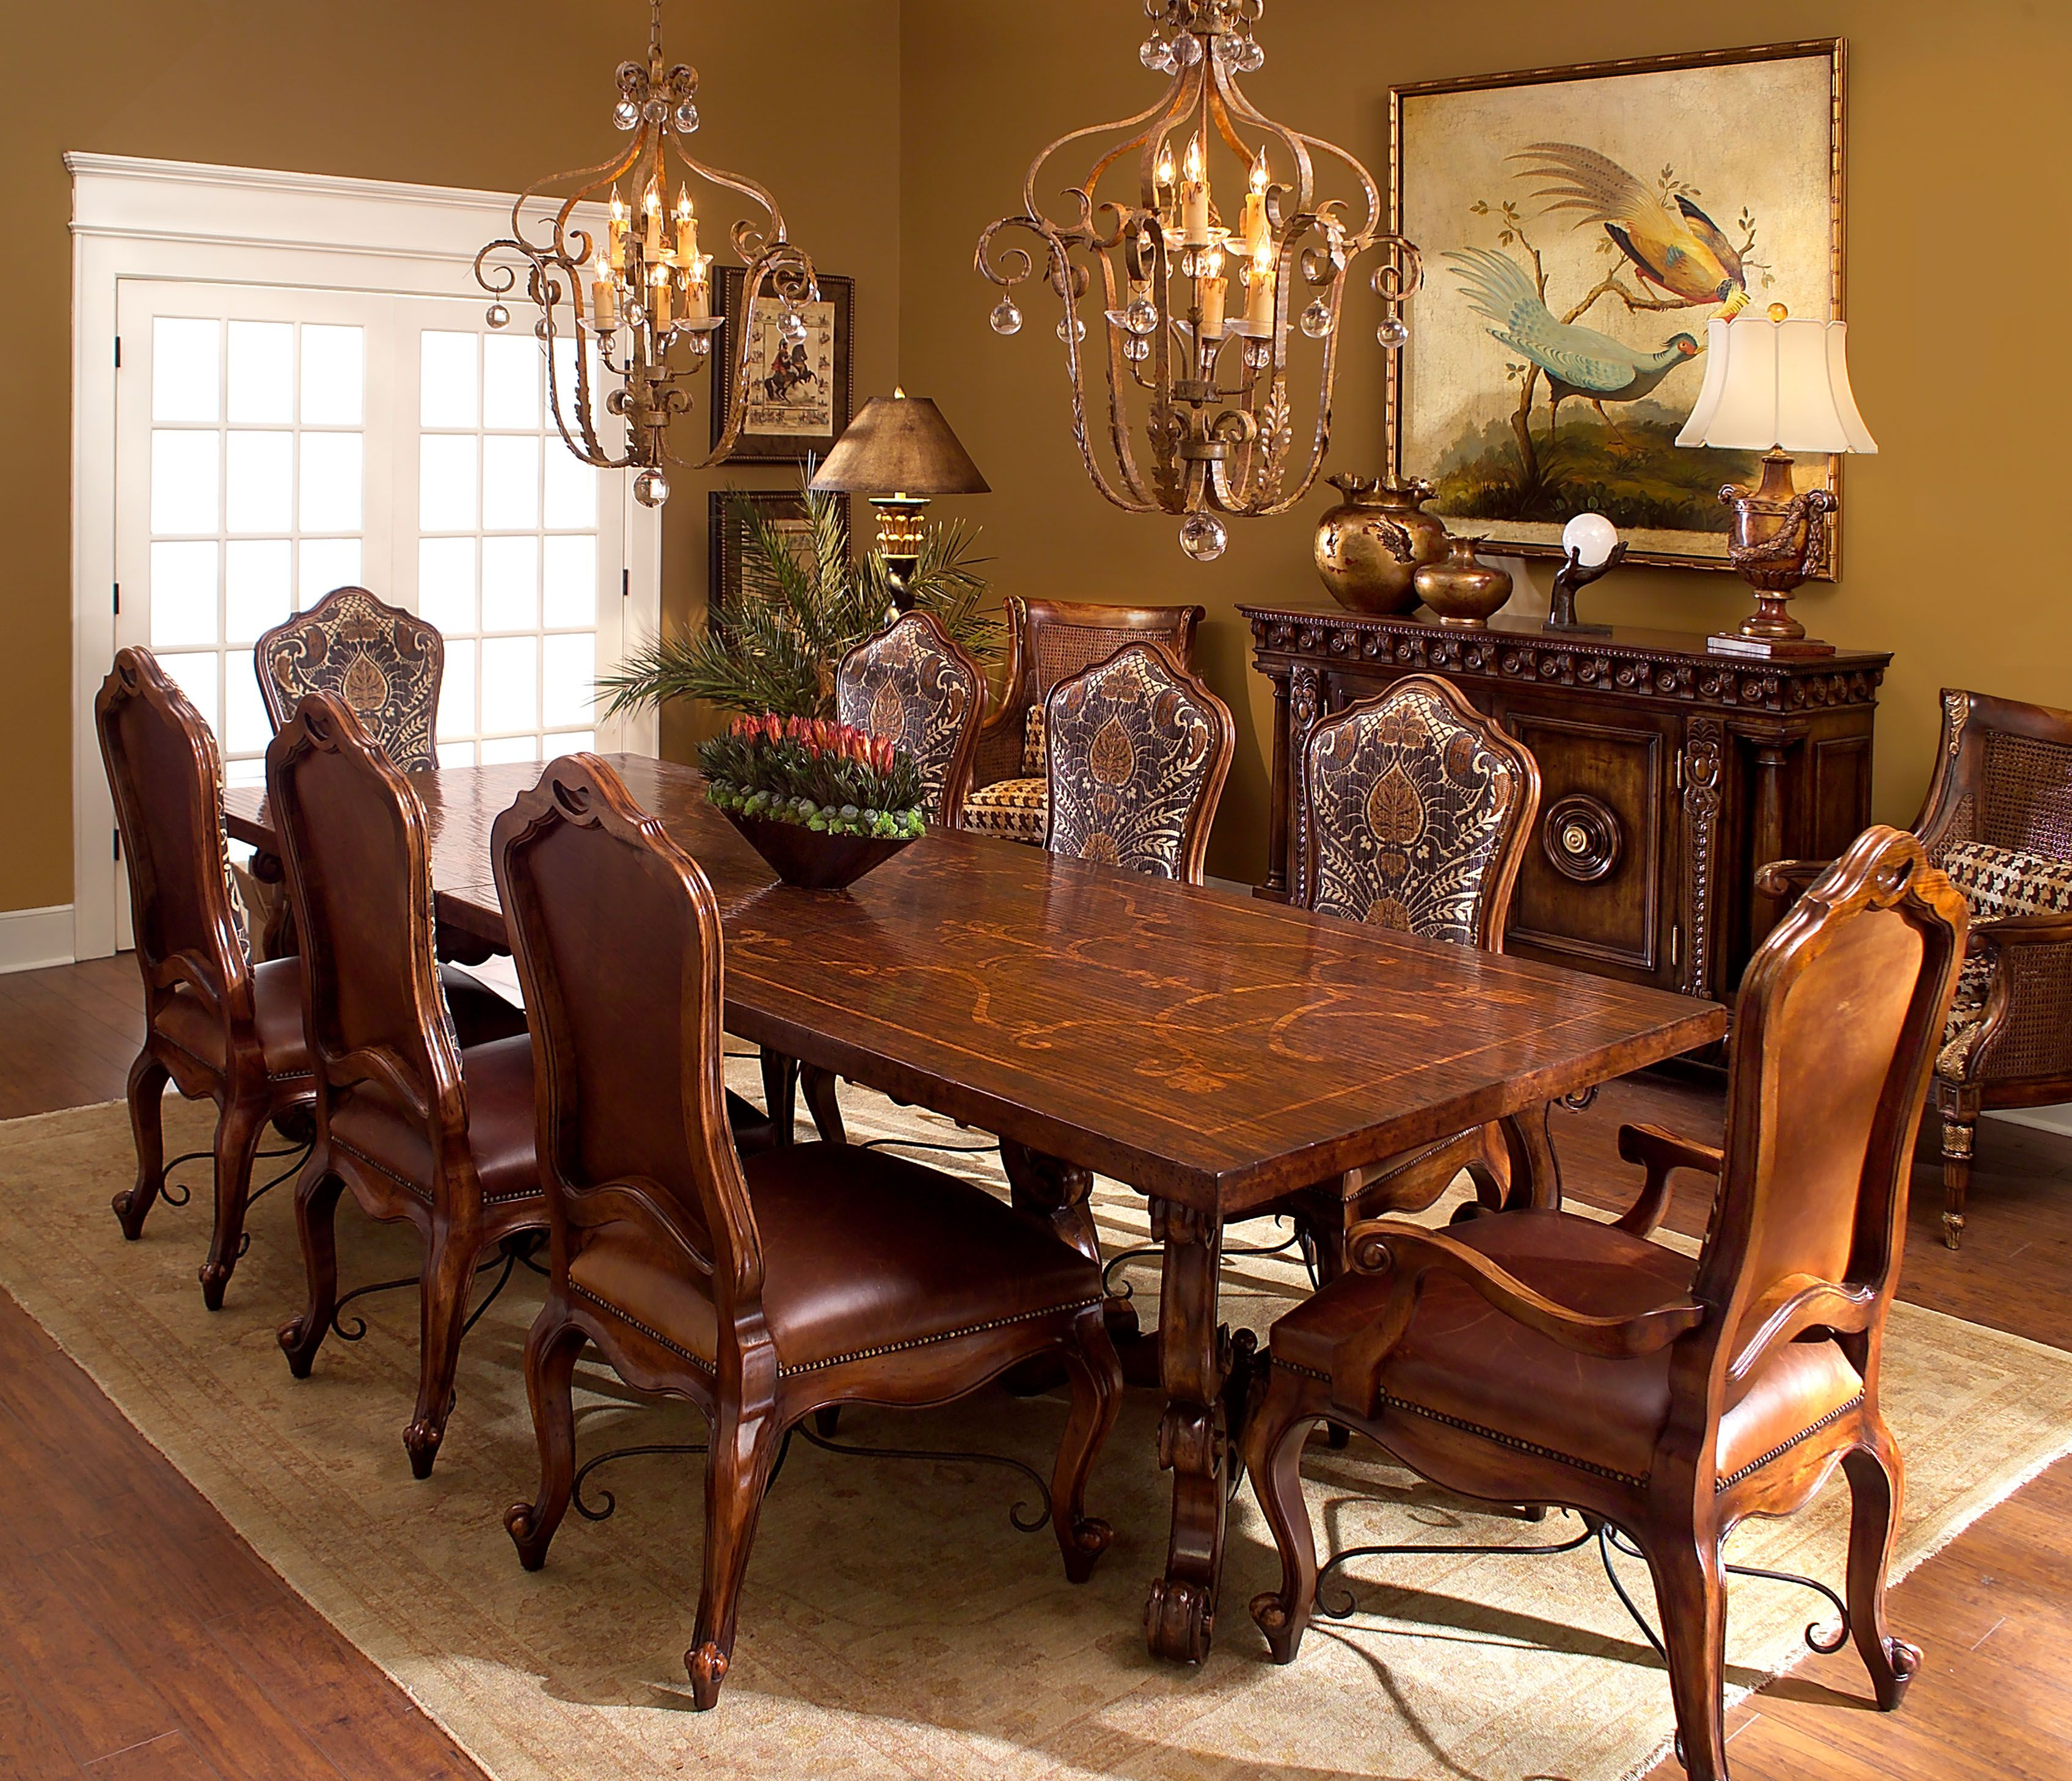 The Rafael Is A Large Oak Parquetry Top Extending Dining Table Enchanting Old Fashioned Dining Room Sets Design Ideas